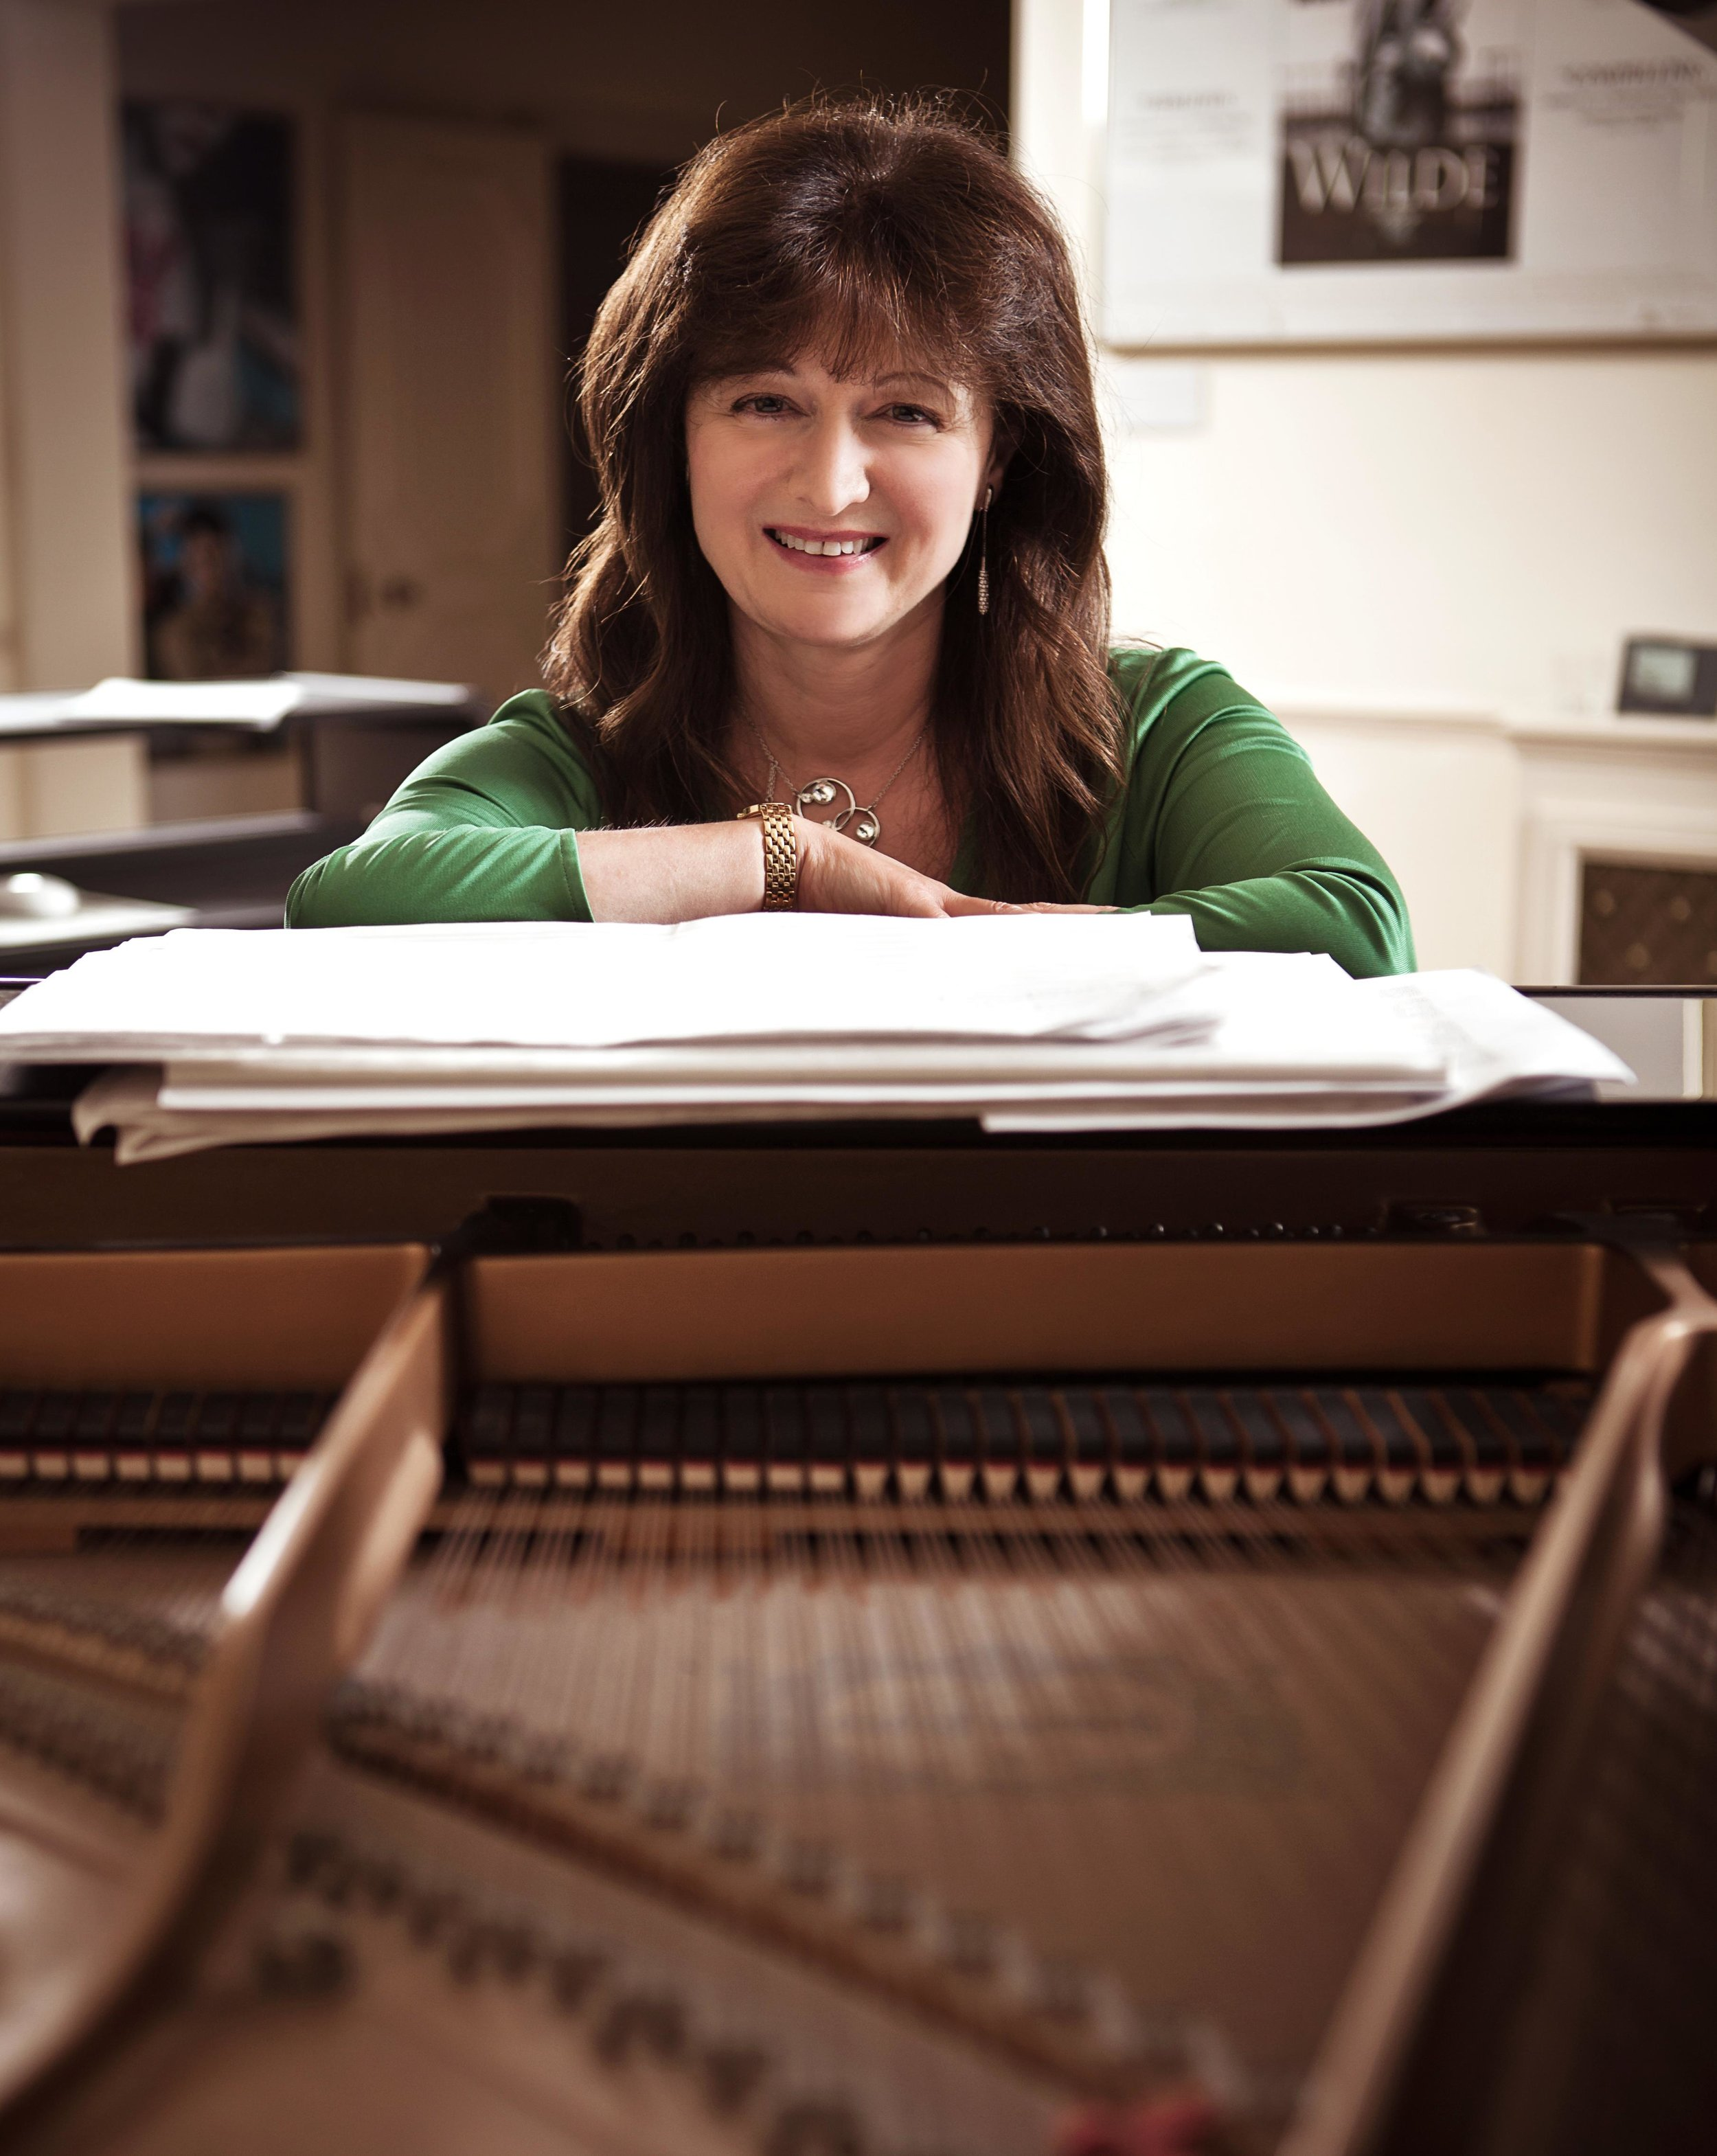 DEBBIE WISEMAN        MBE    : music composer   Throughout the past 20 years, there are probably few people in the UK who have not heard a theme from one of Debbie's films or television productions. Whether it is watching Stephen Fry bring to life  Oscar WI  LDE  for the big screen, hearing the latest political commentary on a Sunday morning with  Andrew Marr , or revelling in the Tudor world of Thomas Cromwell in  WO  LF HALL , Wiseman has gifted us iconic themes of beauty and passion, love and laughter.  Her credits, over 200 of them, for the big and small screen, include  WOLF HALL , JUDGE JOHN DEED,  WILDE , HAUNTED, OTHELLO,  TOM & VIV , JEKYLL, THE INSPECTOR LYNLEY MYSTERIES, THE PASSION, THE GUILTY, BEFORE YOU GO,  ARSENE LUPIN ,  TOM'S MIDNIGHT GARDEN , LOST CHRISTMAS,  THE PROMISE ,  A POET IN NEW YORK , THE ANDREW MARR SHOW, THE CORONER and EDIE director Simon Hunter's first feature  LIGHTHOUSE .  Debbie is a Visiting Professor at the Royal College of Music and is  Classic FM's  composer in residence. Some of Debbie's work can be heard on her website  HERE.